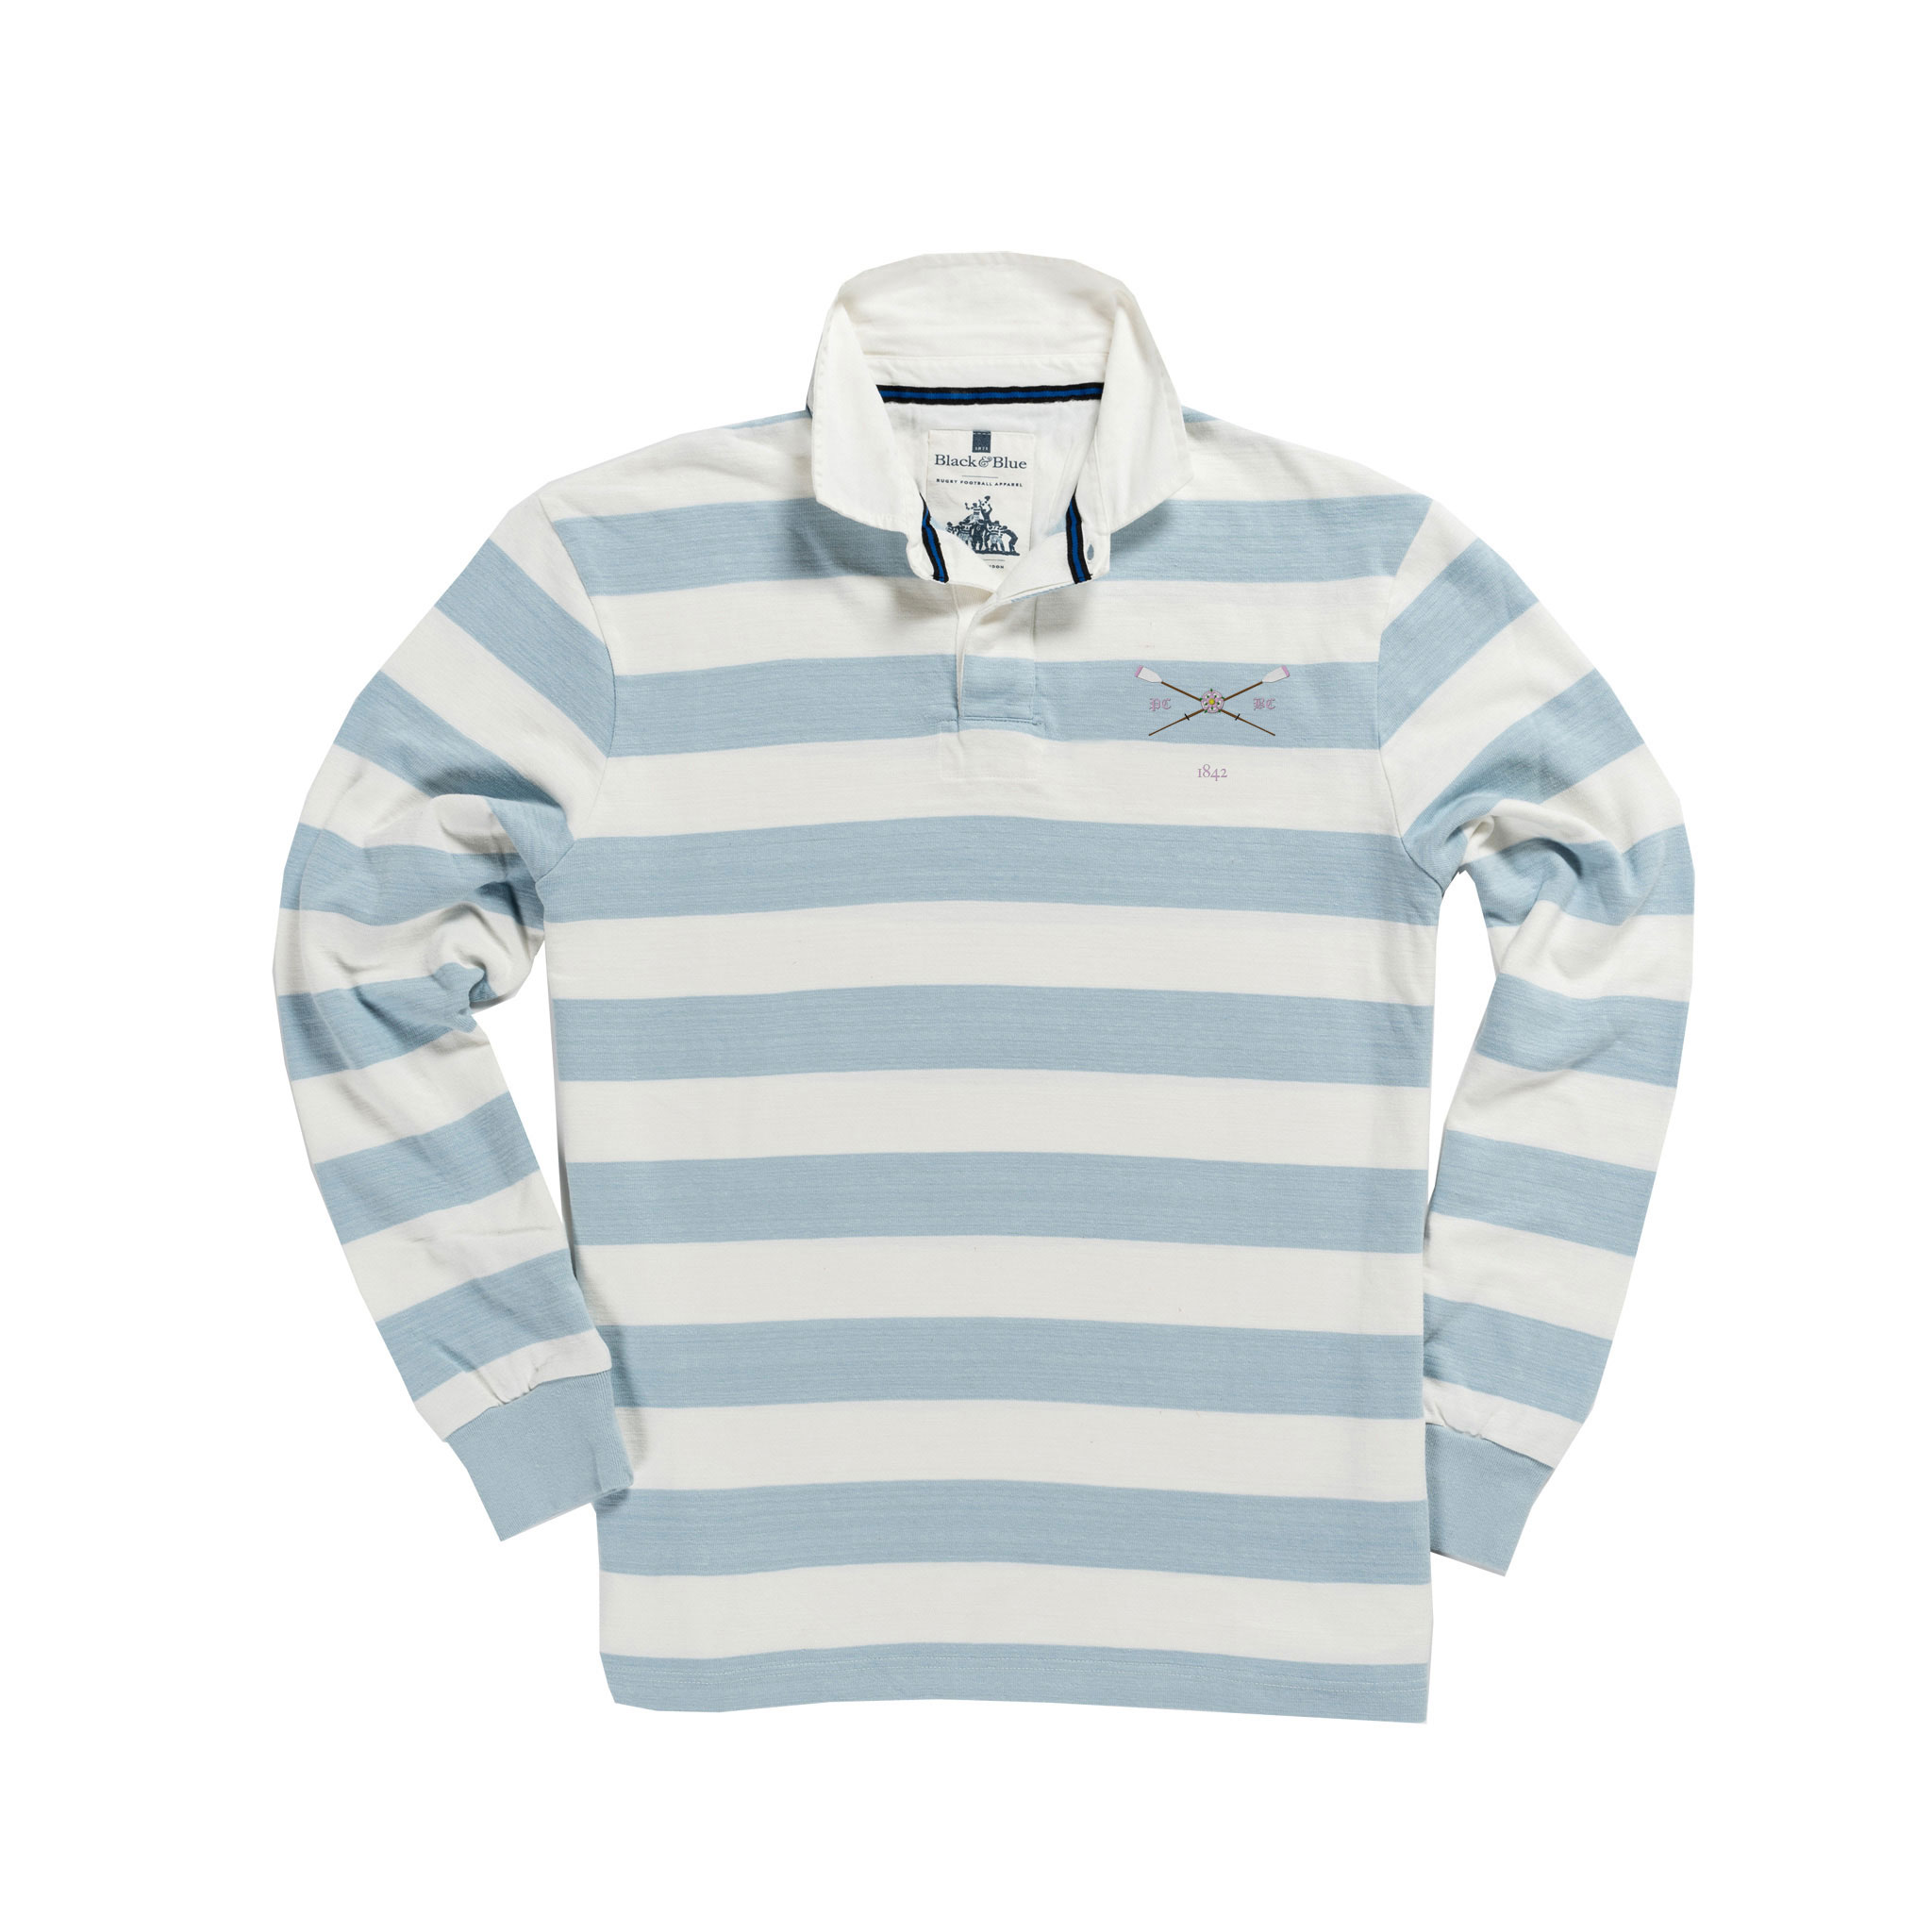 Pembroke 1842 Rugby Shirt Blue and White_Front